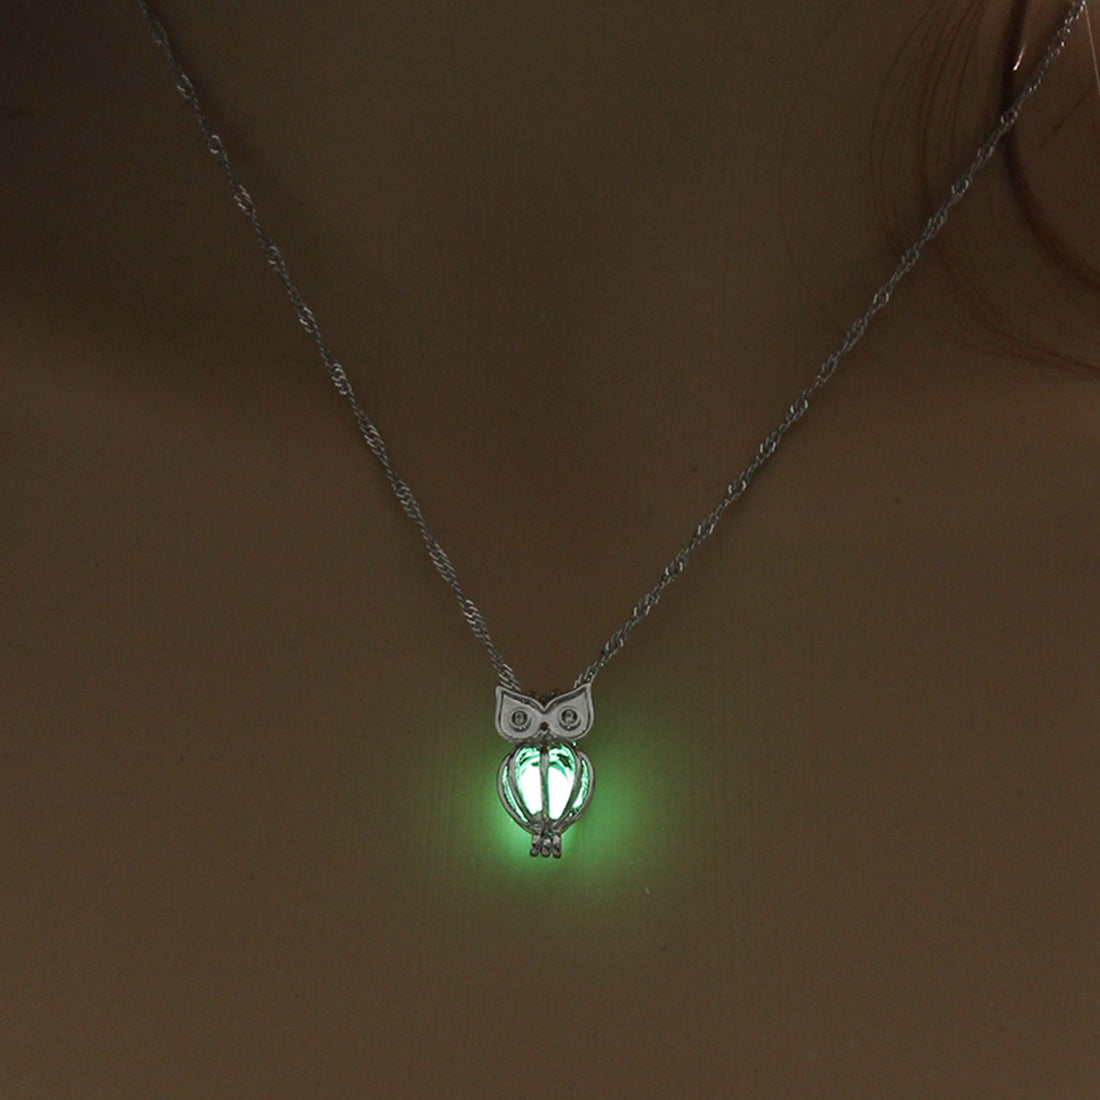 Wendy Glowing Owl Pendant Necklace